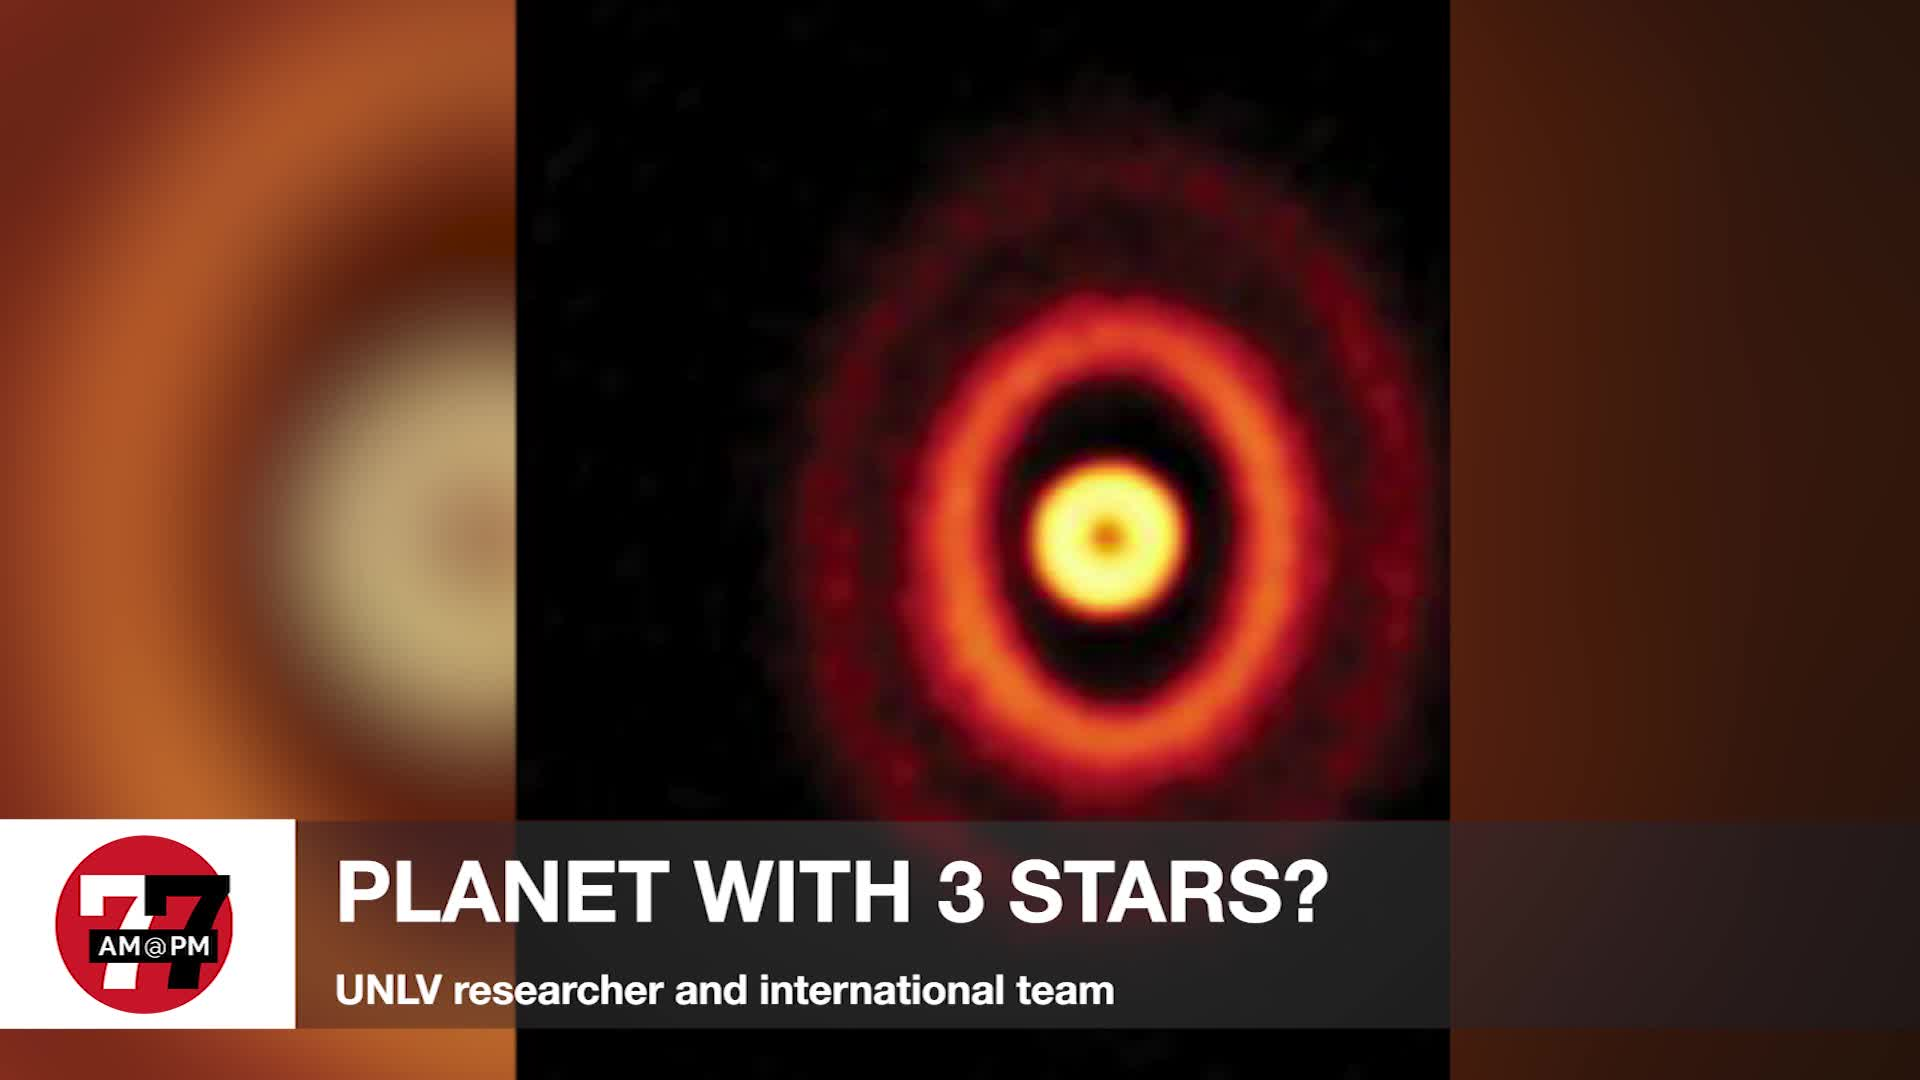 7@7PM Planet with 3 Stars found by UNLV Researcher